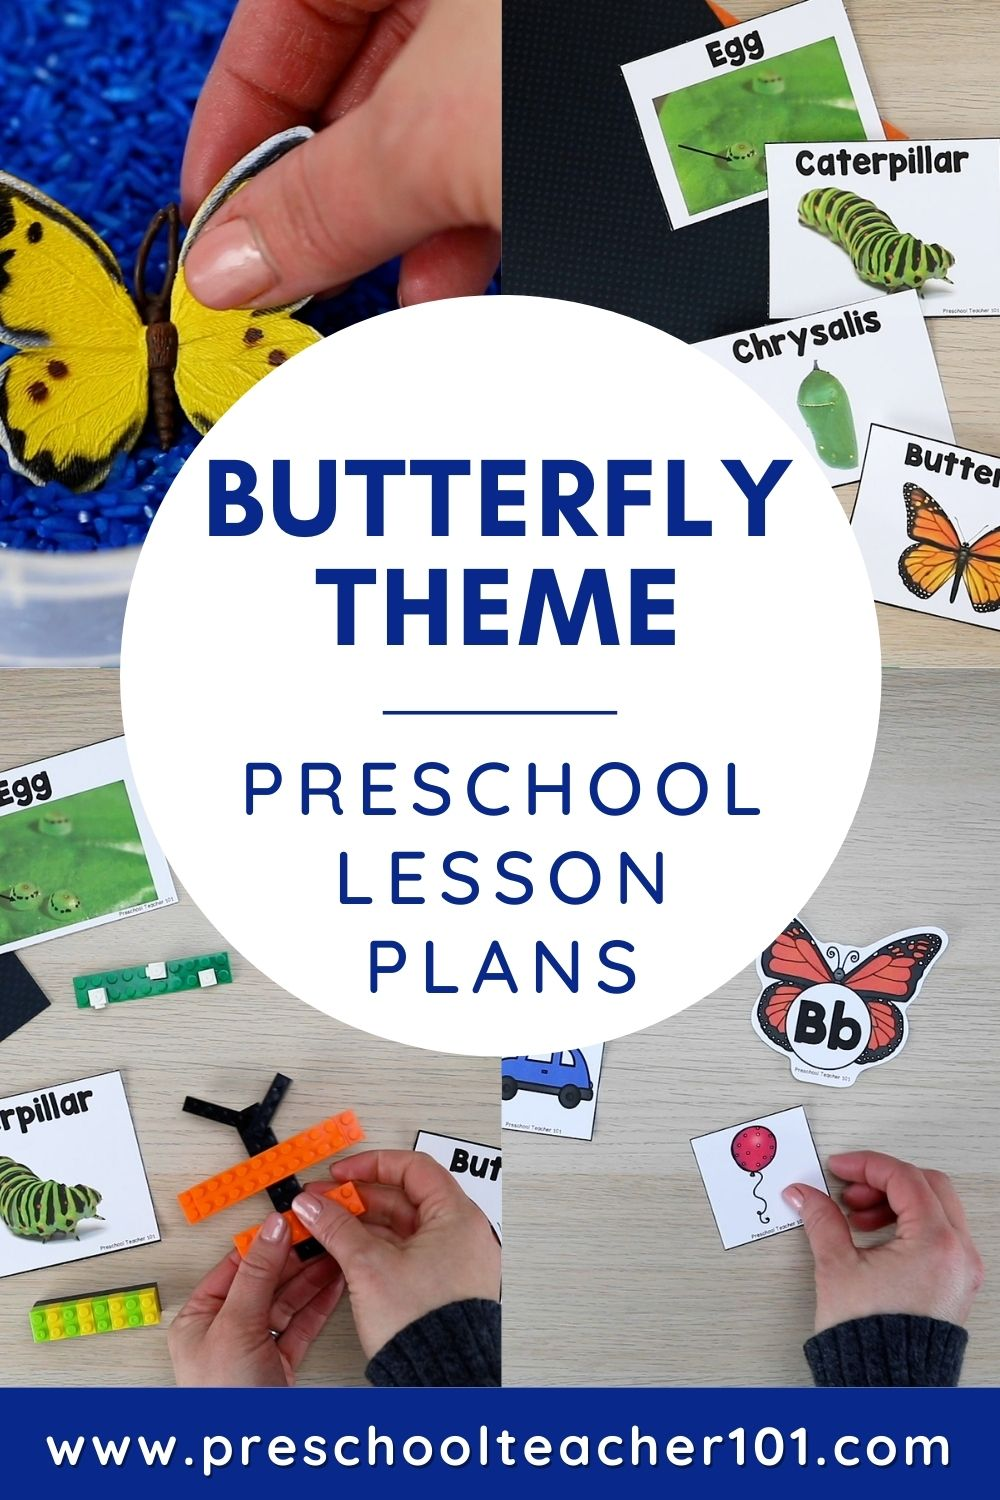 Preschool Butterfly Theme Activities